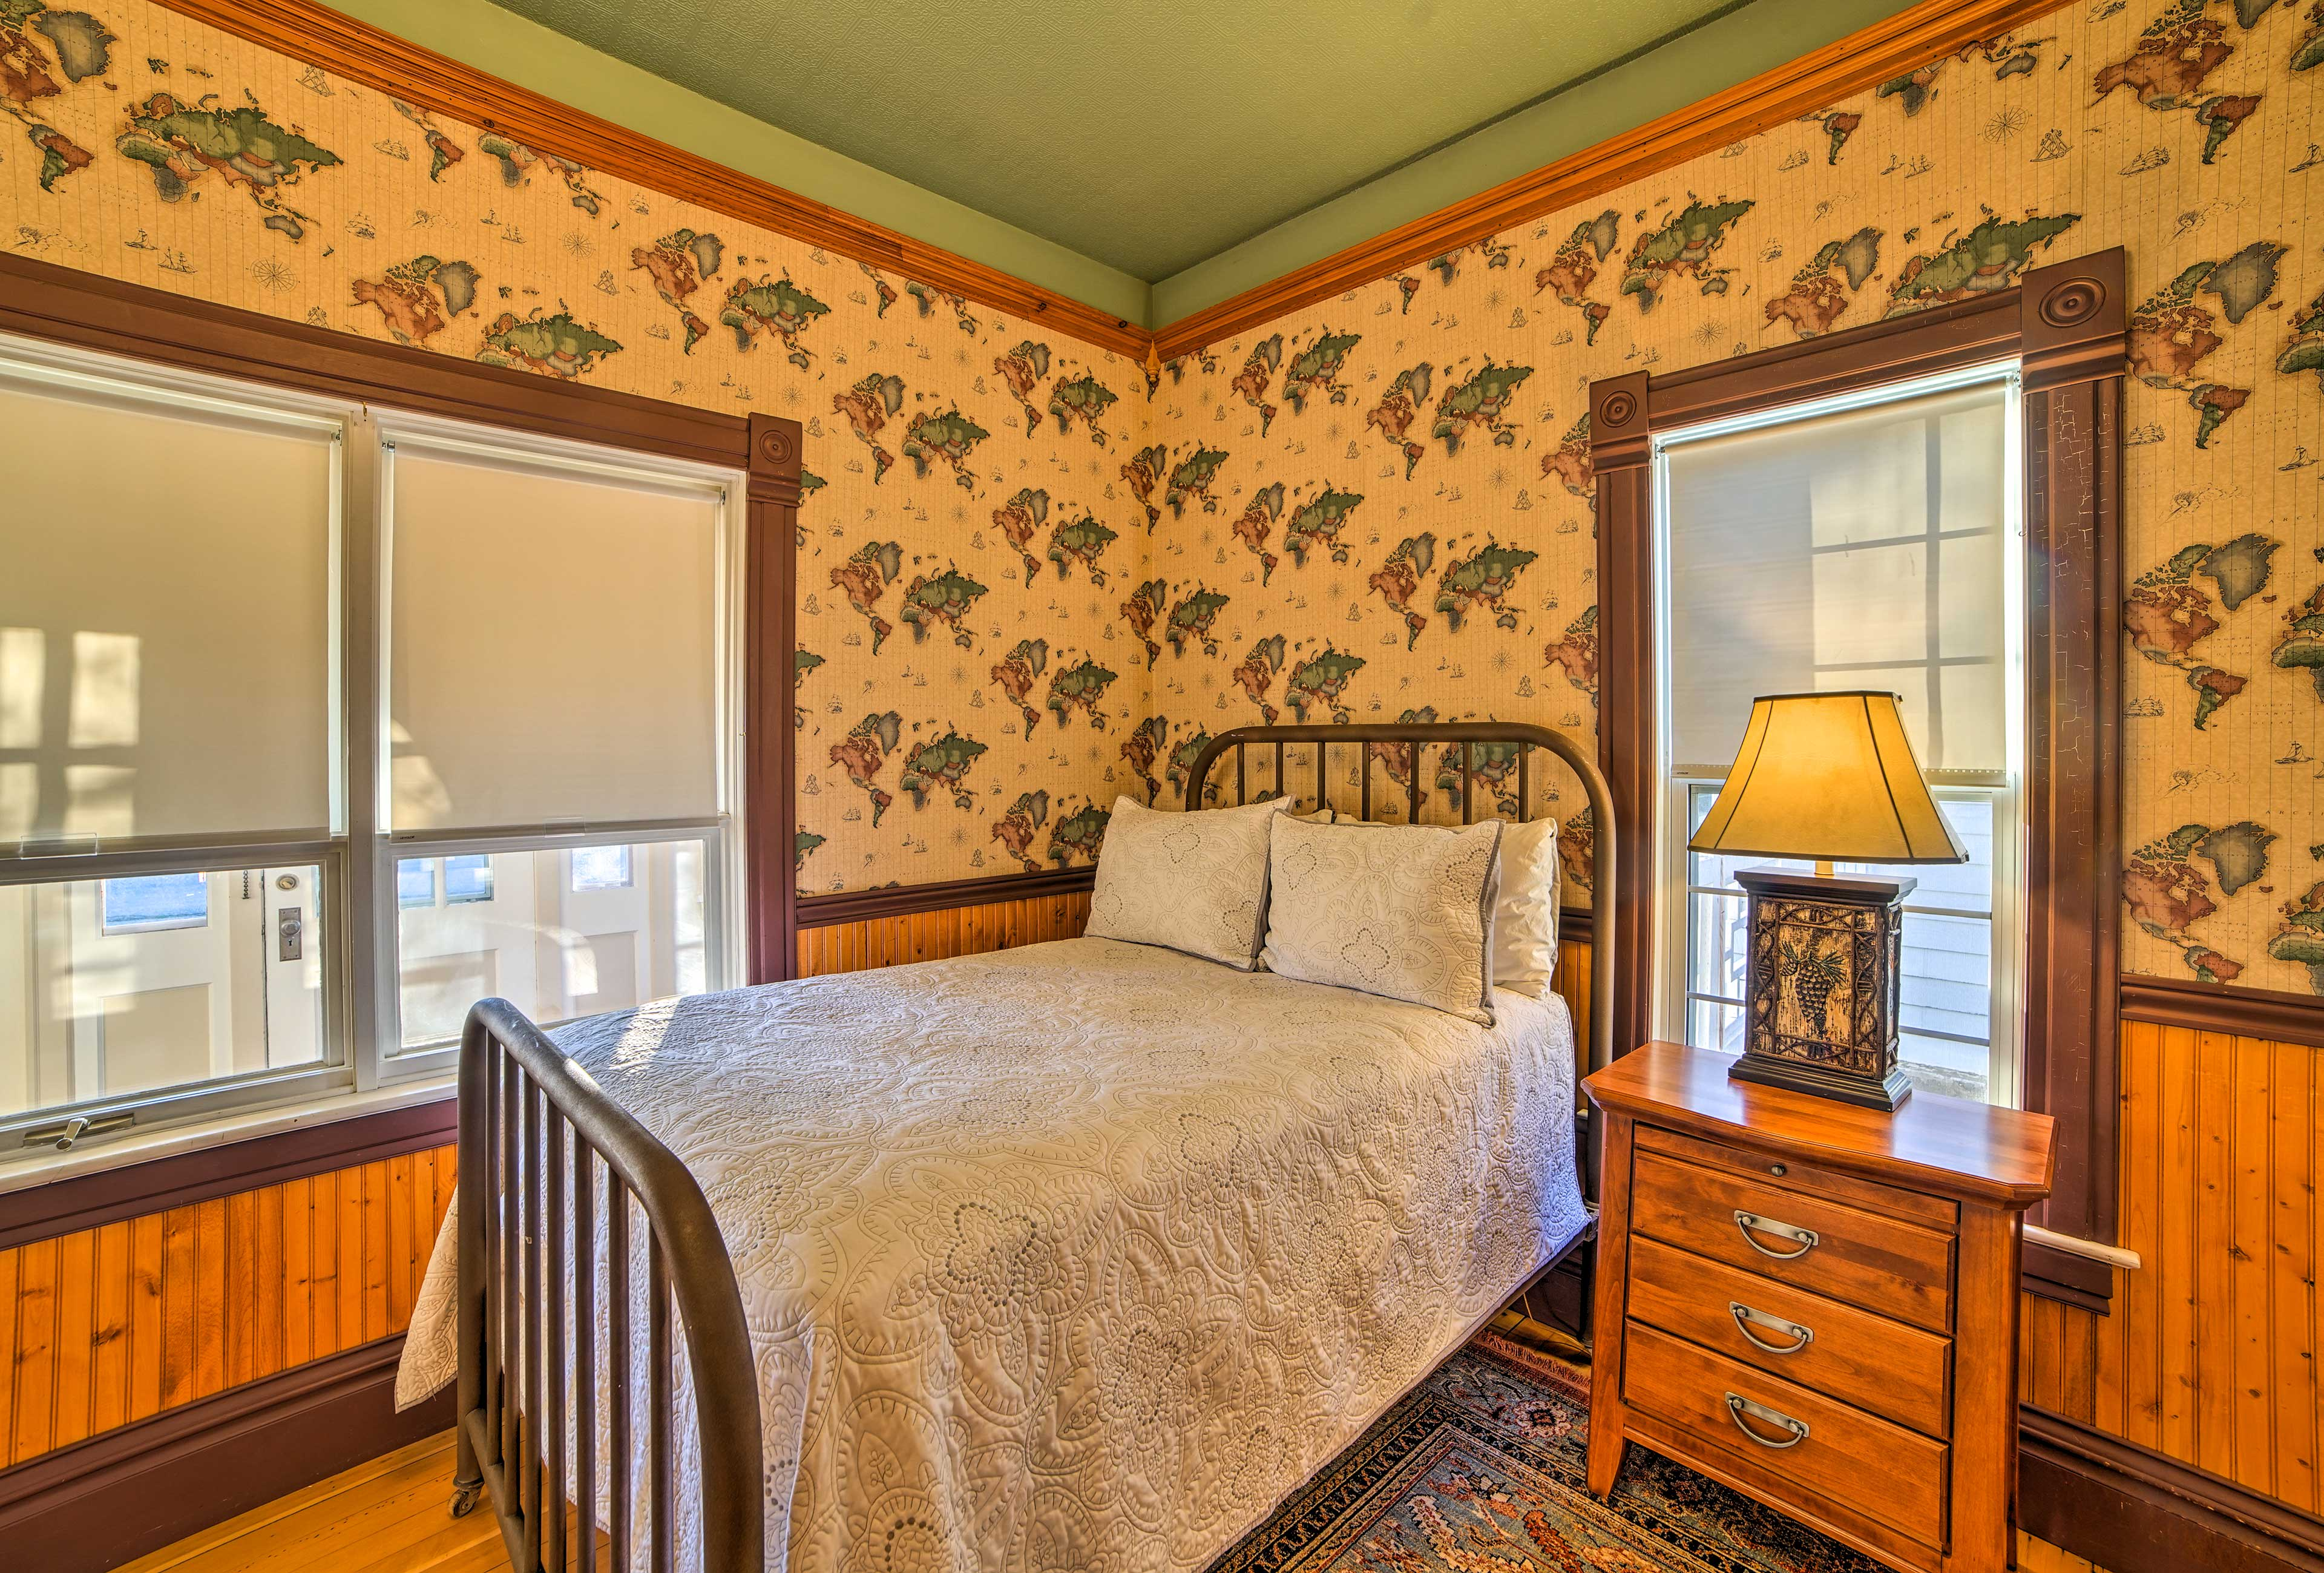 This bright, homey room features a full-sized bed.